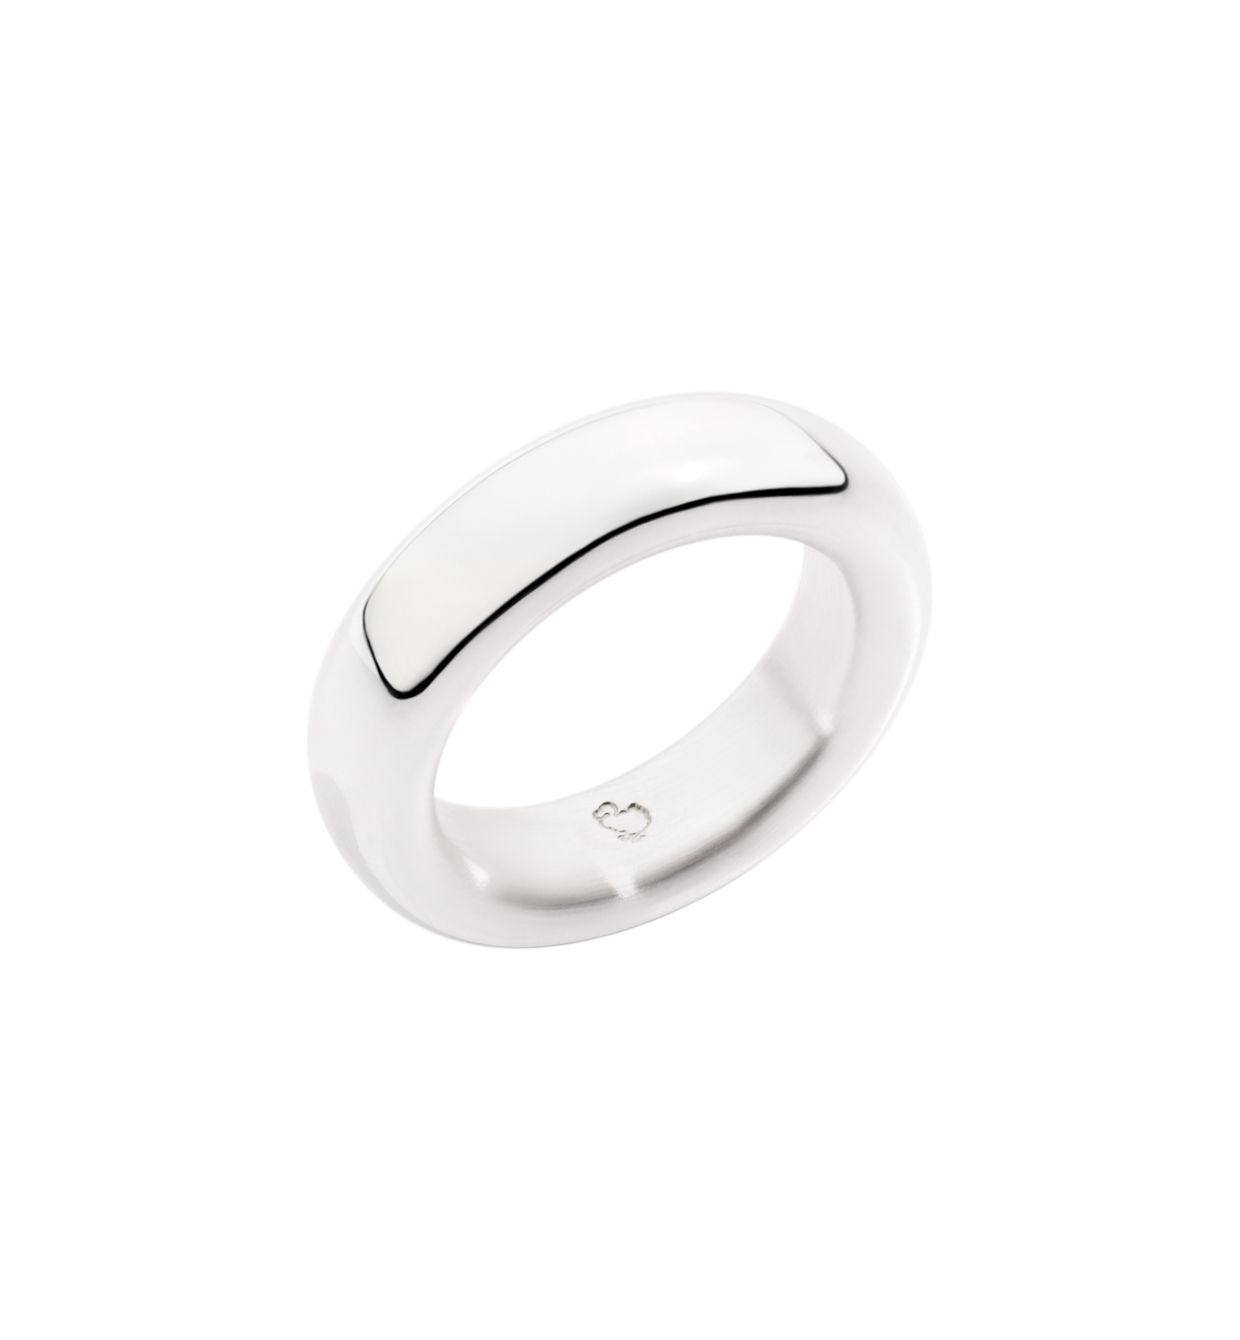 Dodo Band Ring in Silver - Orsini Jewellers NZ